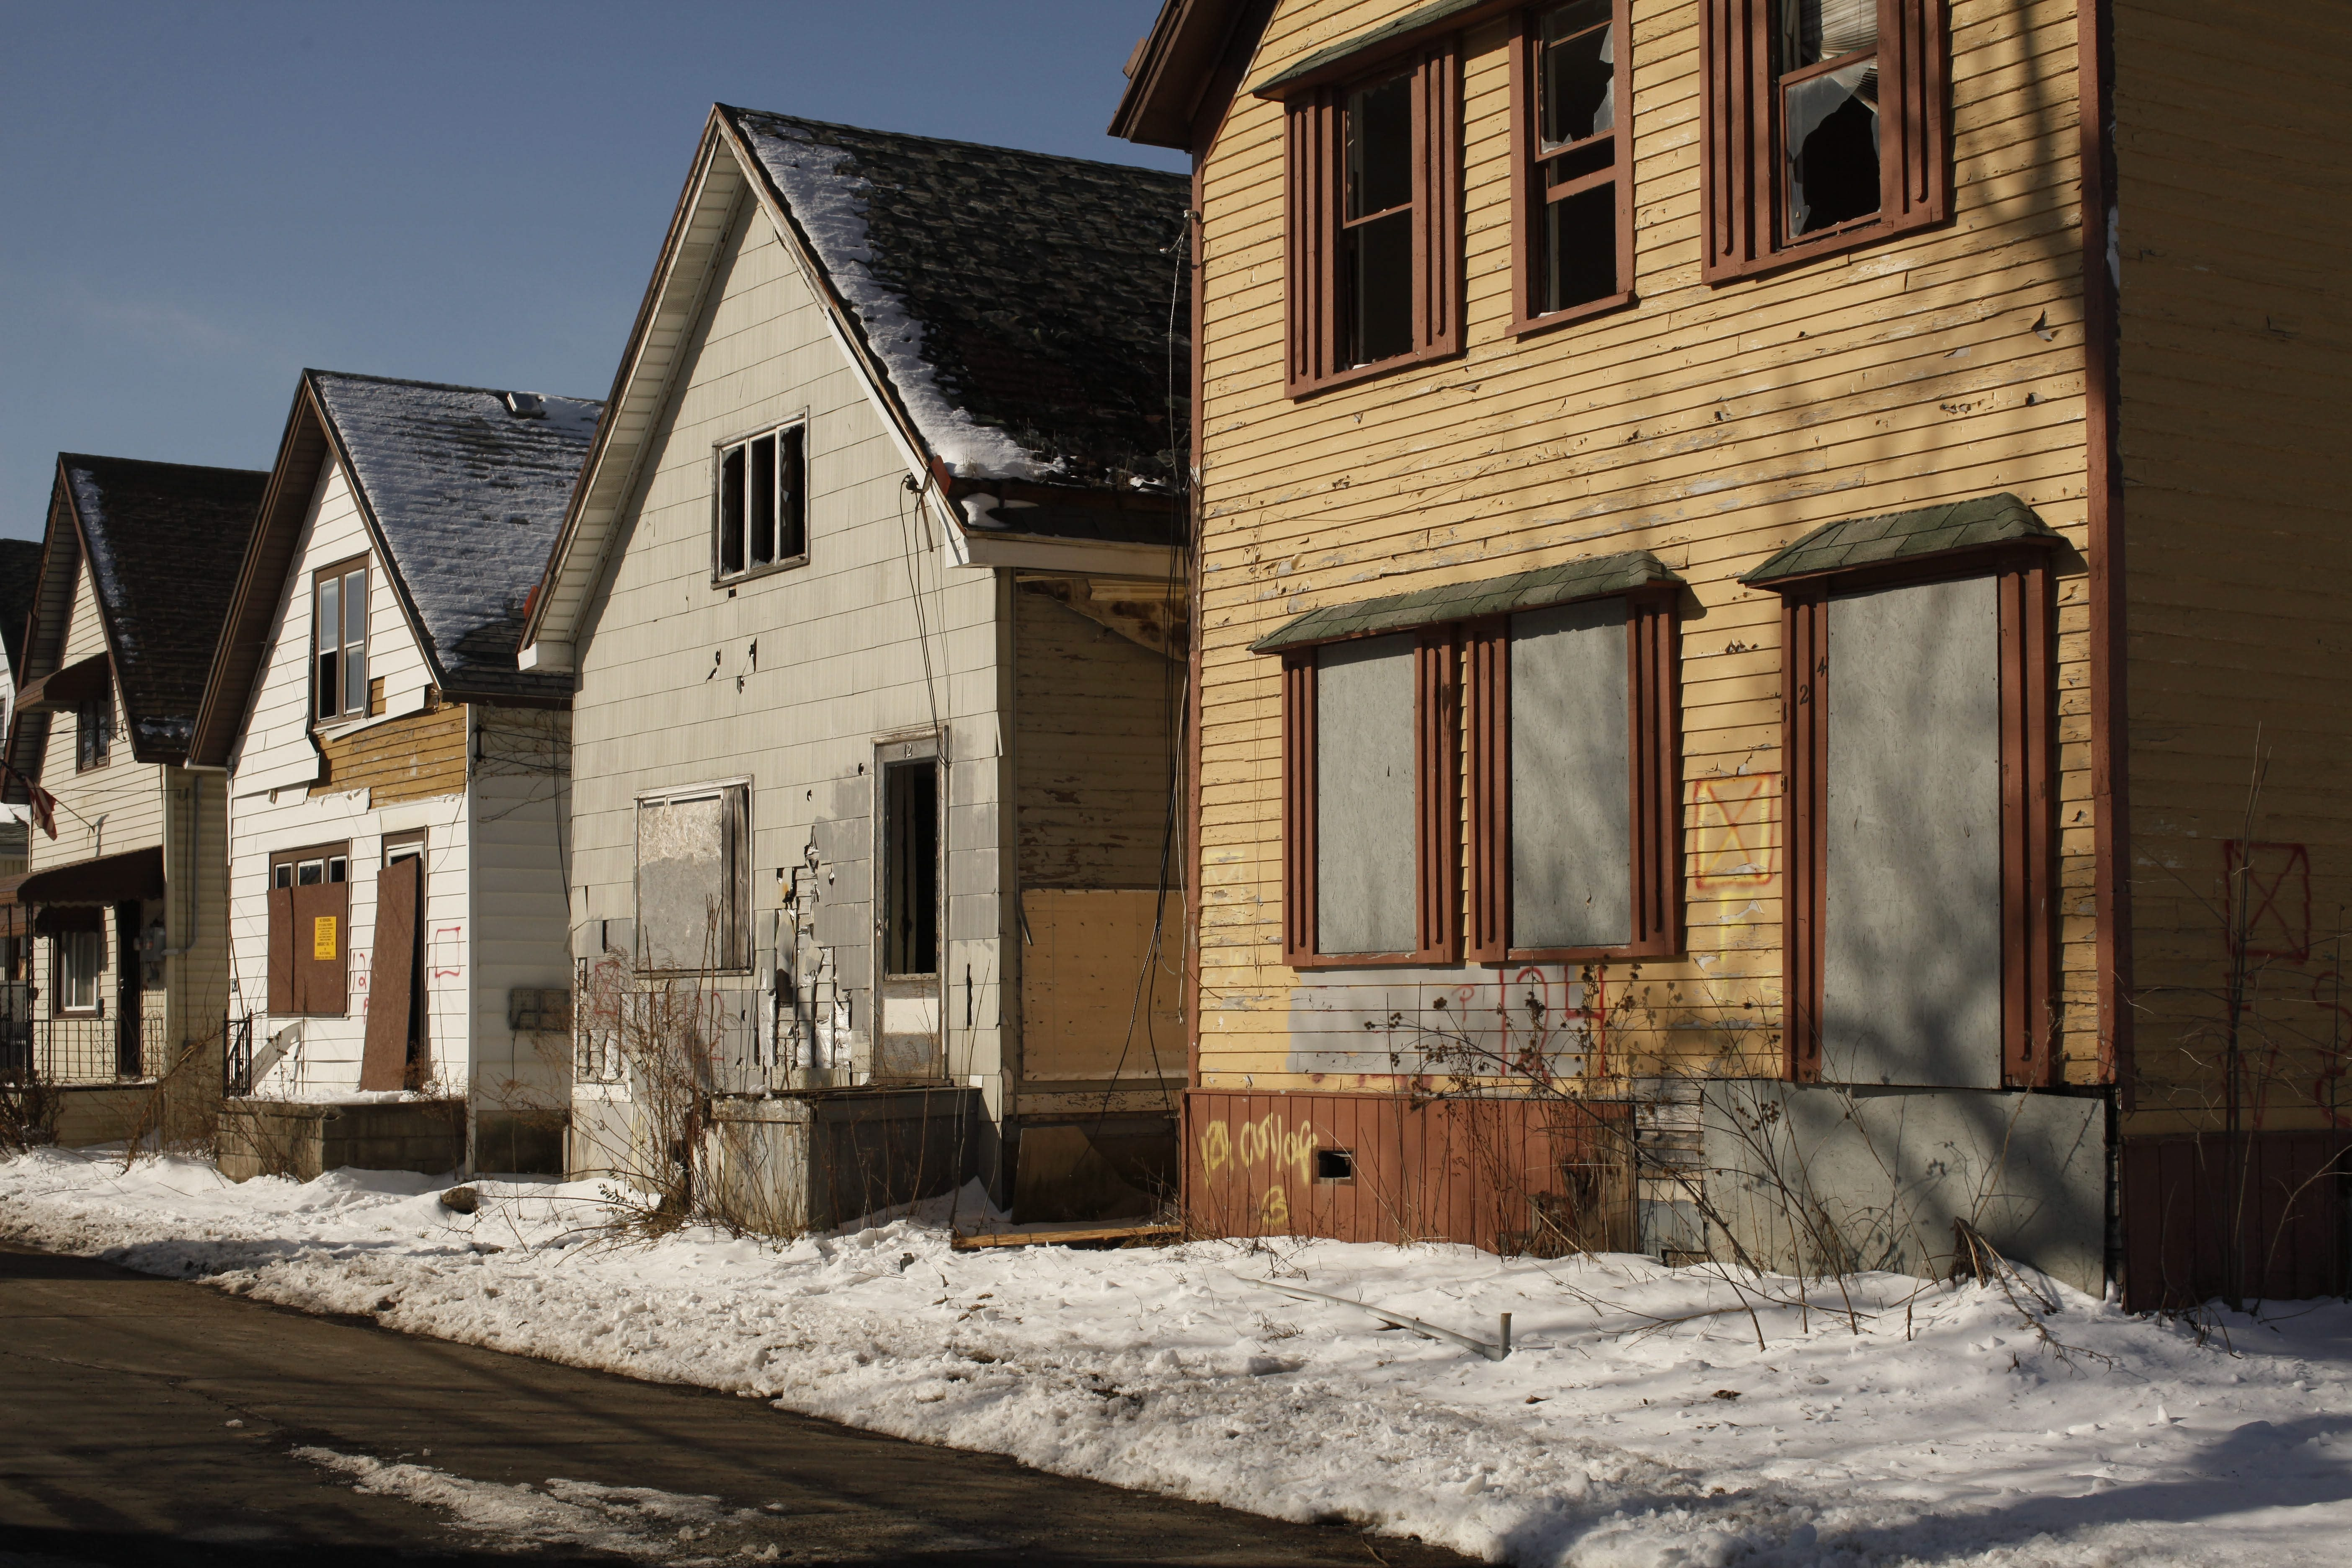 With an infusion of state cash, the Erie County land bank should be able to work to reclaim blighted neighborhoods. (Buffalo News file photo)